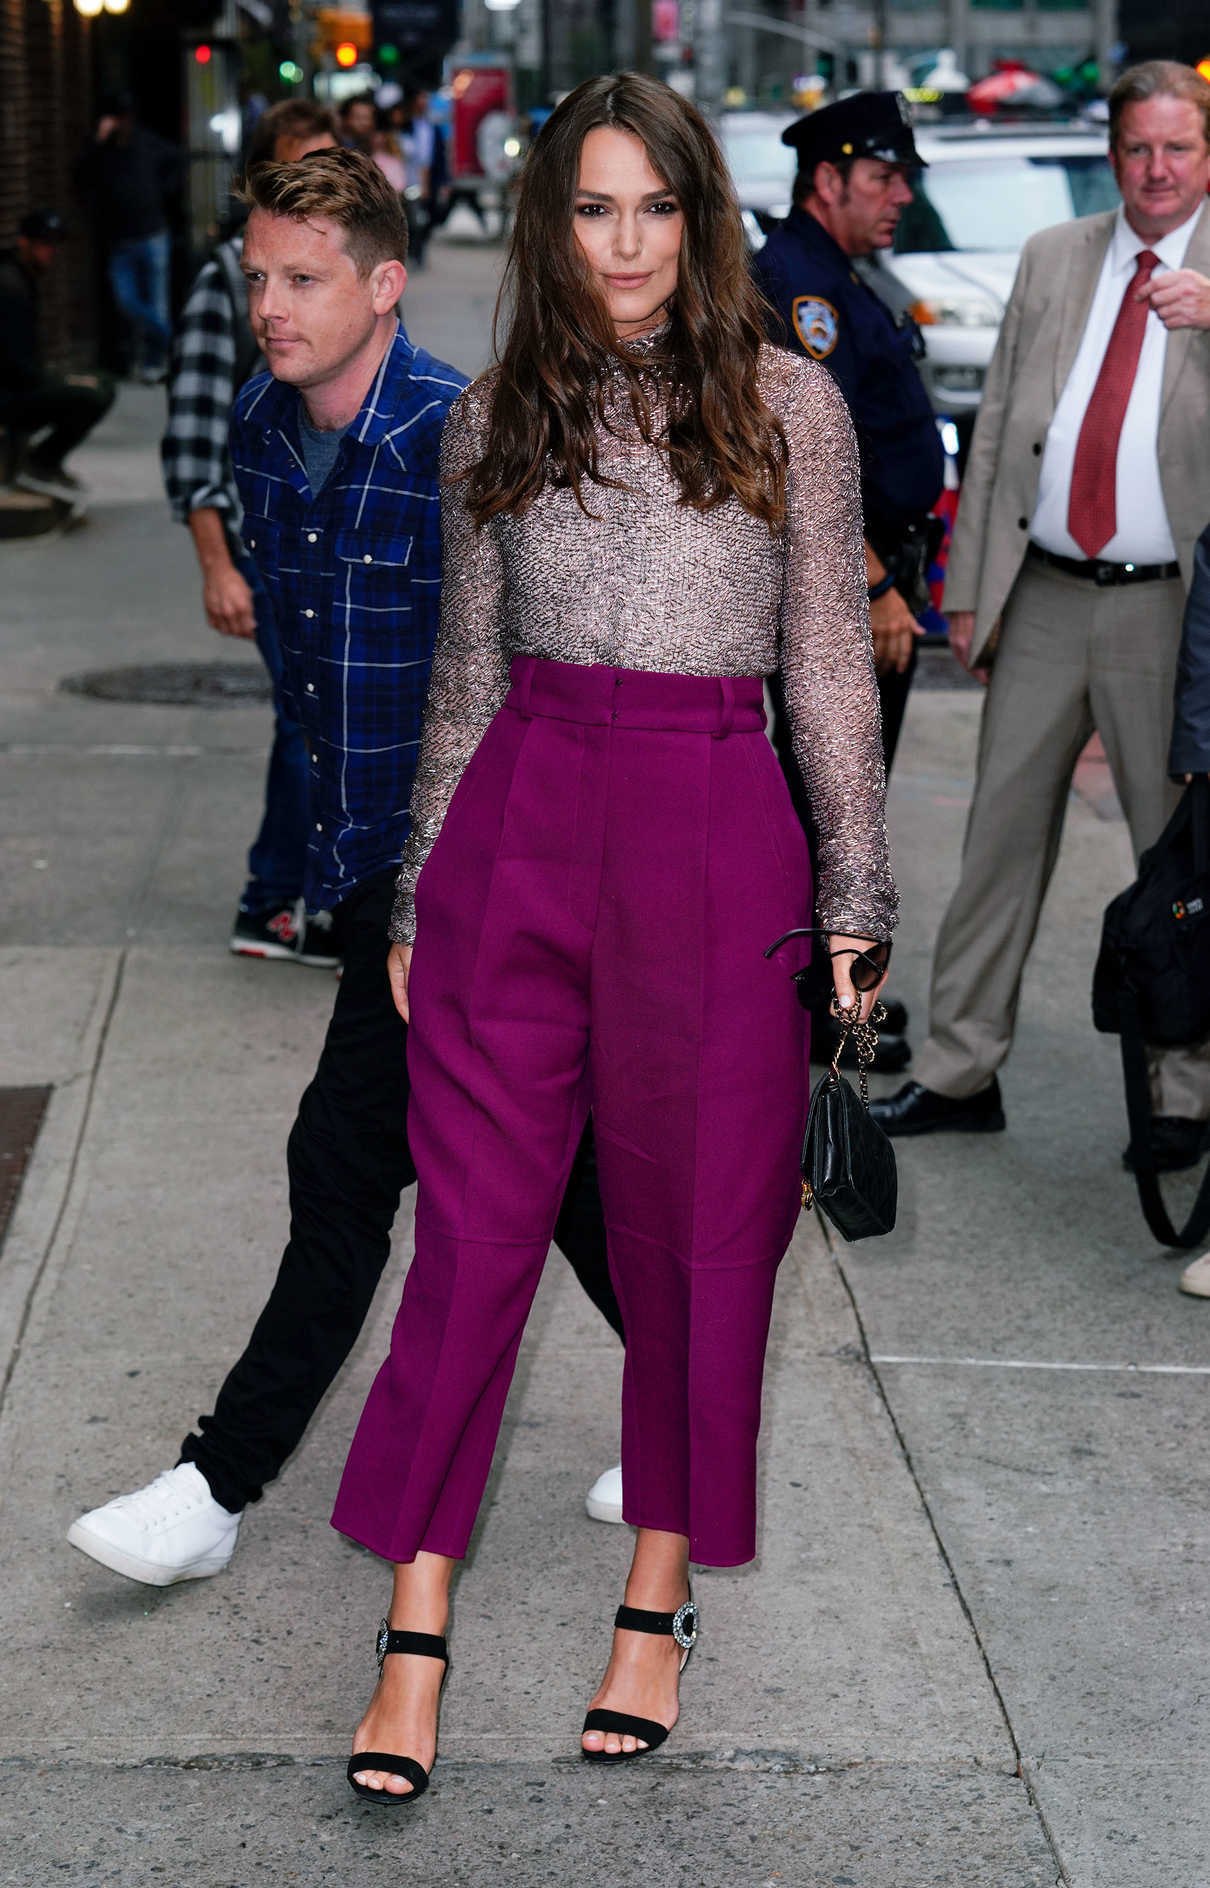 Keira Knightley in a Lilac Trousers